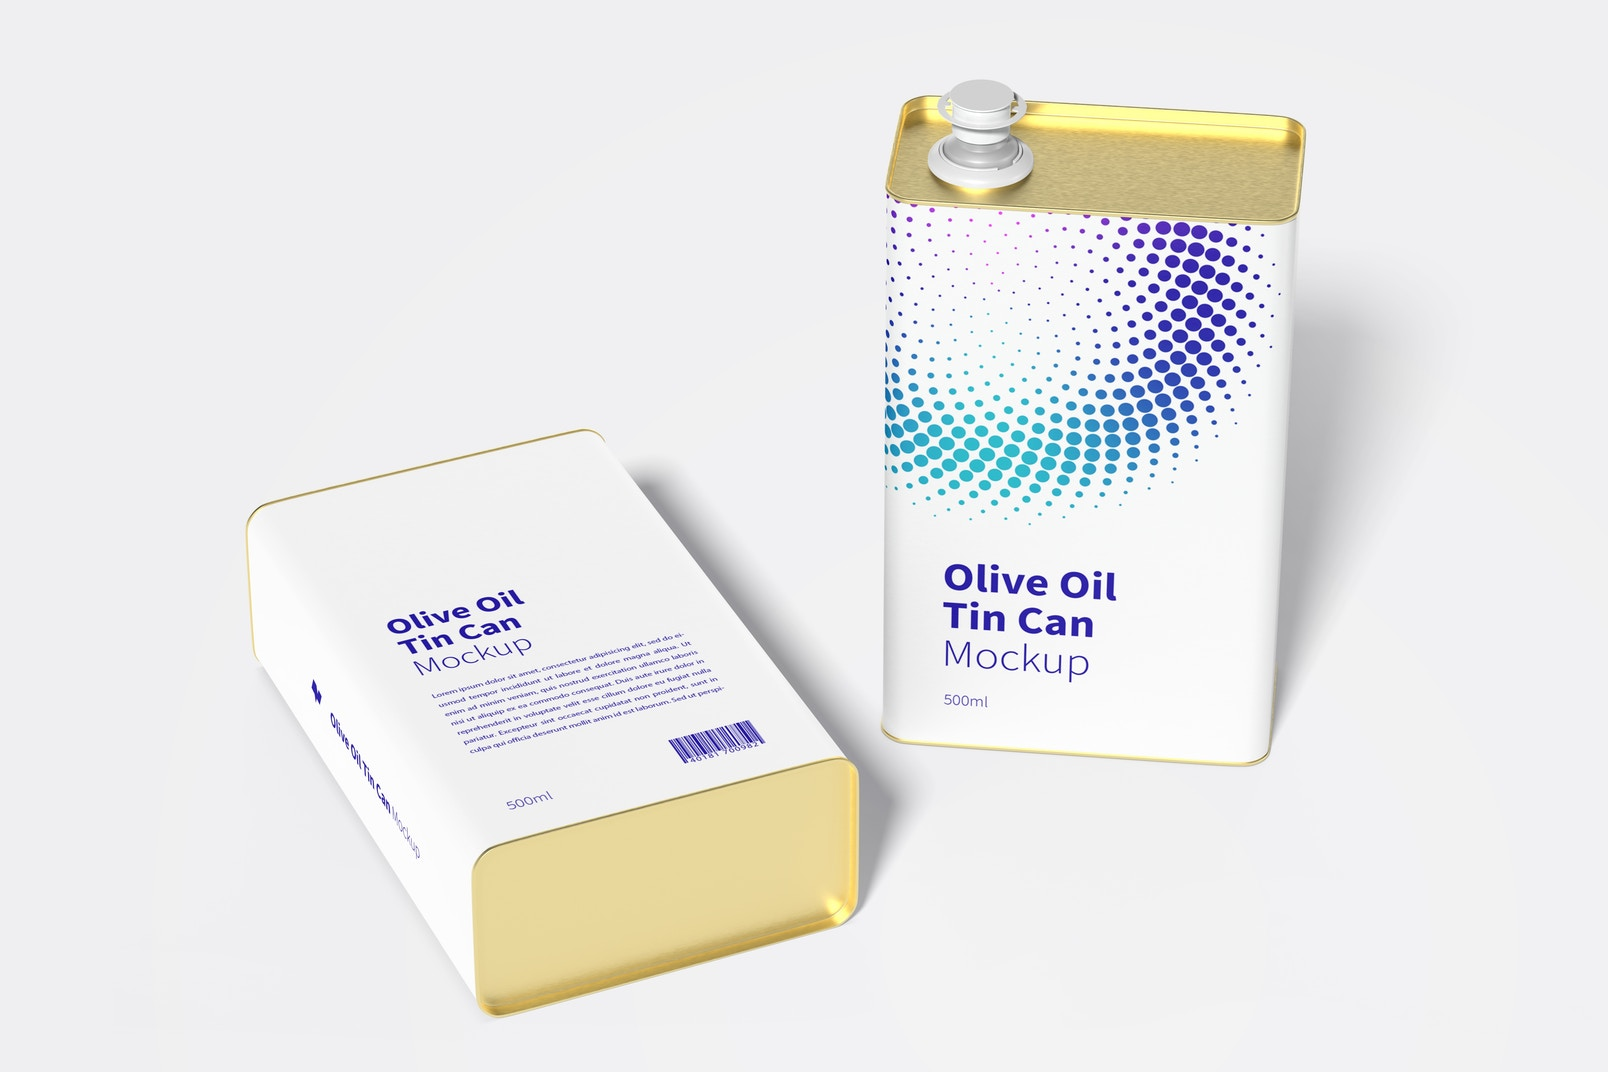 500ml Olive Oil Rectangular Tin Can Mockup, Dropped